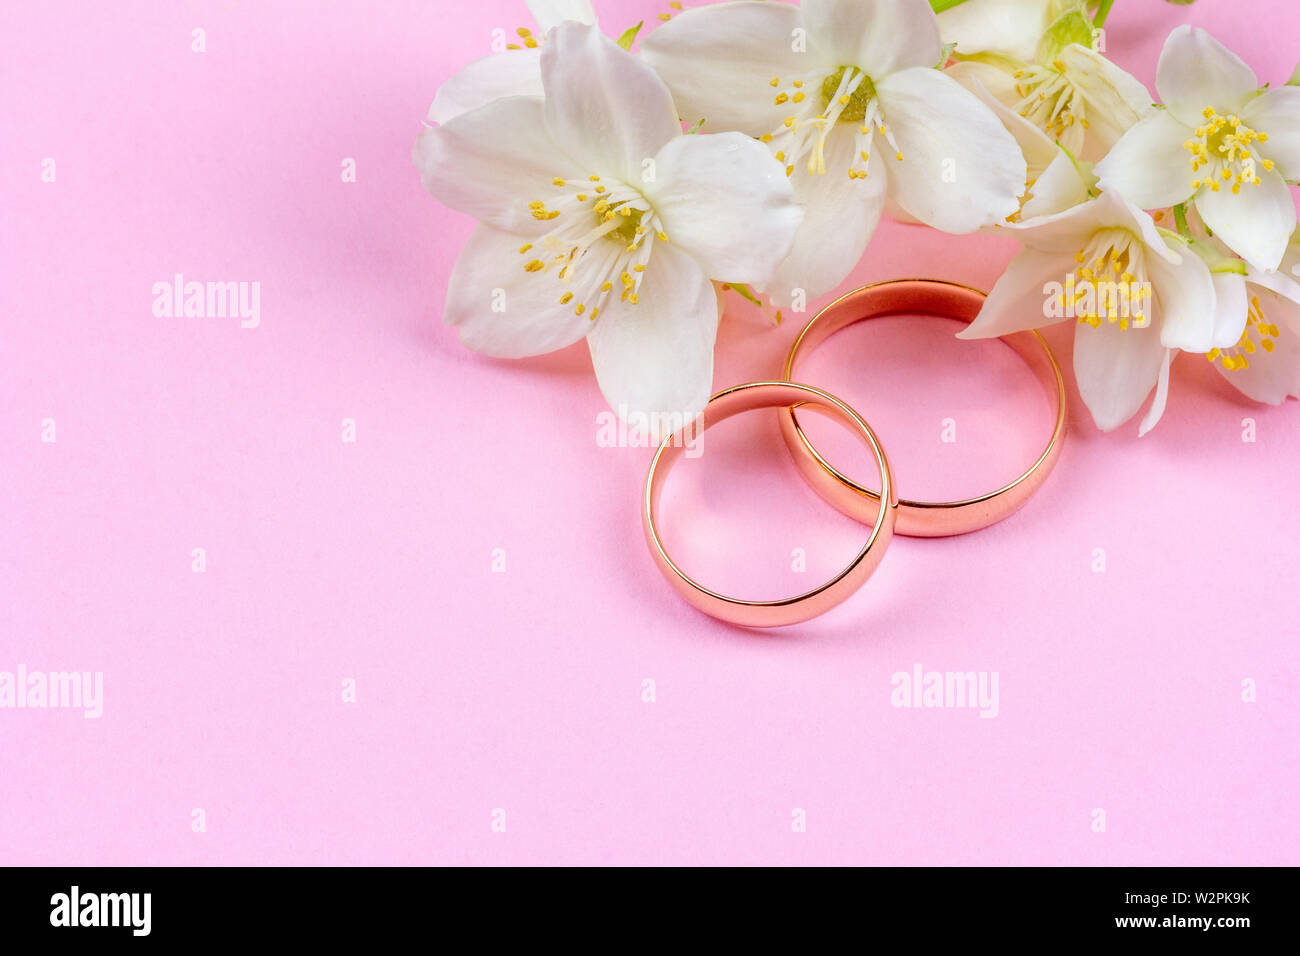 Pair Of Gold Wedding Rings And White Jasmine Flowers On Pink